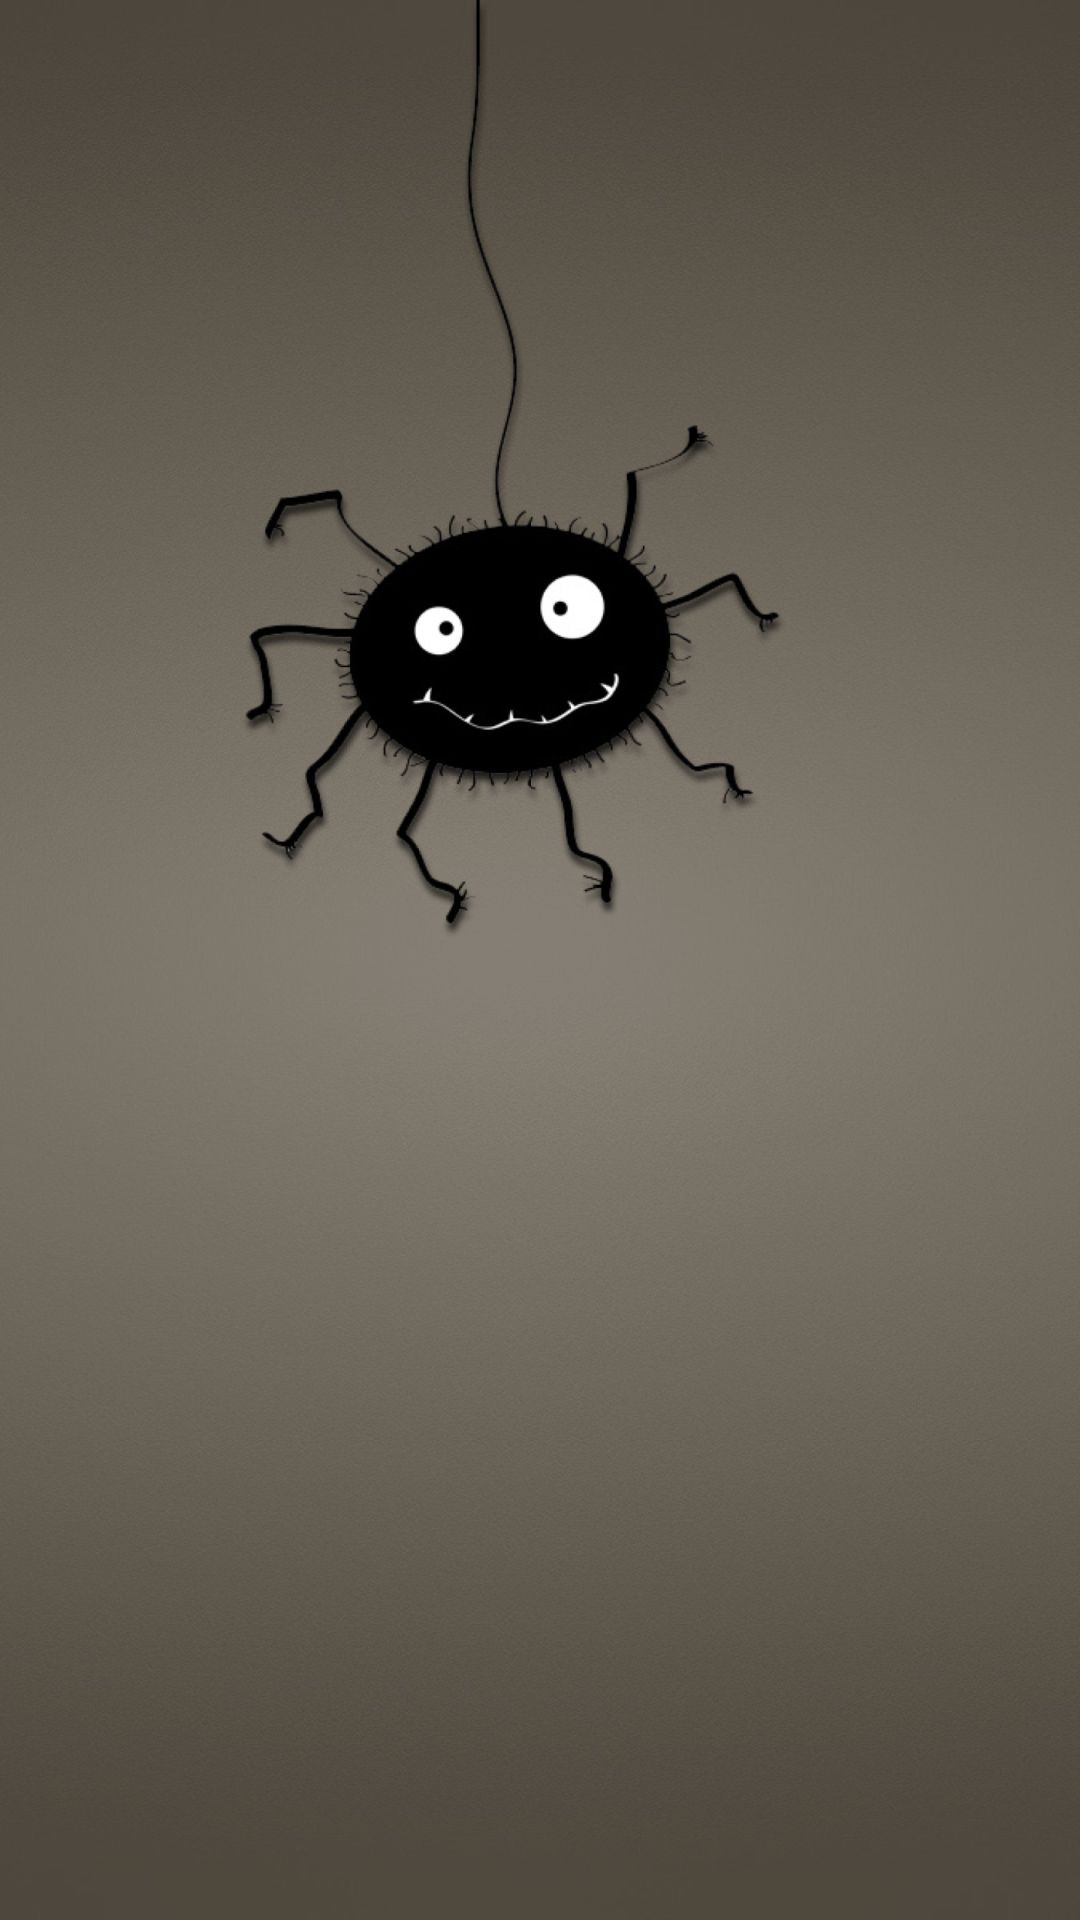 Funny Spider Wallpaper For